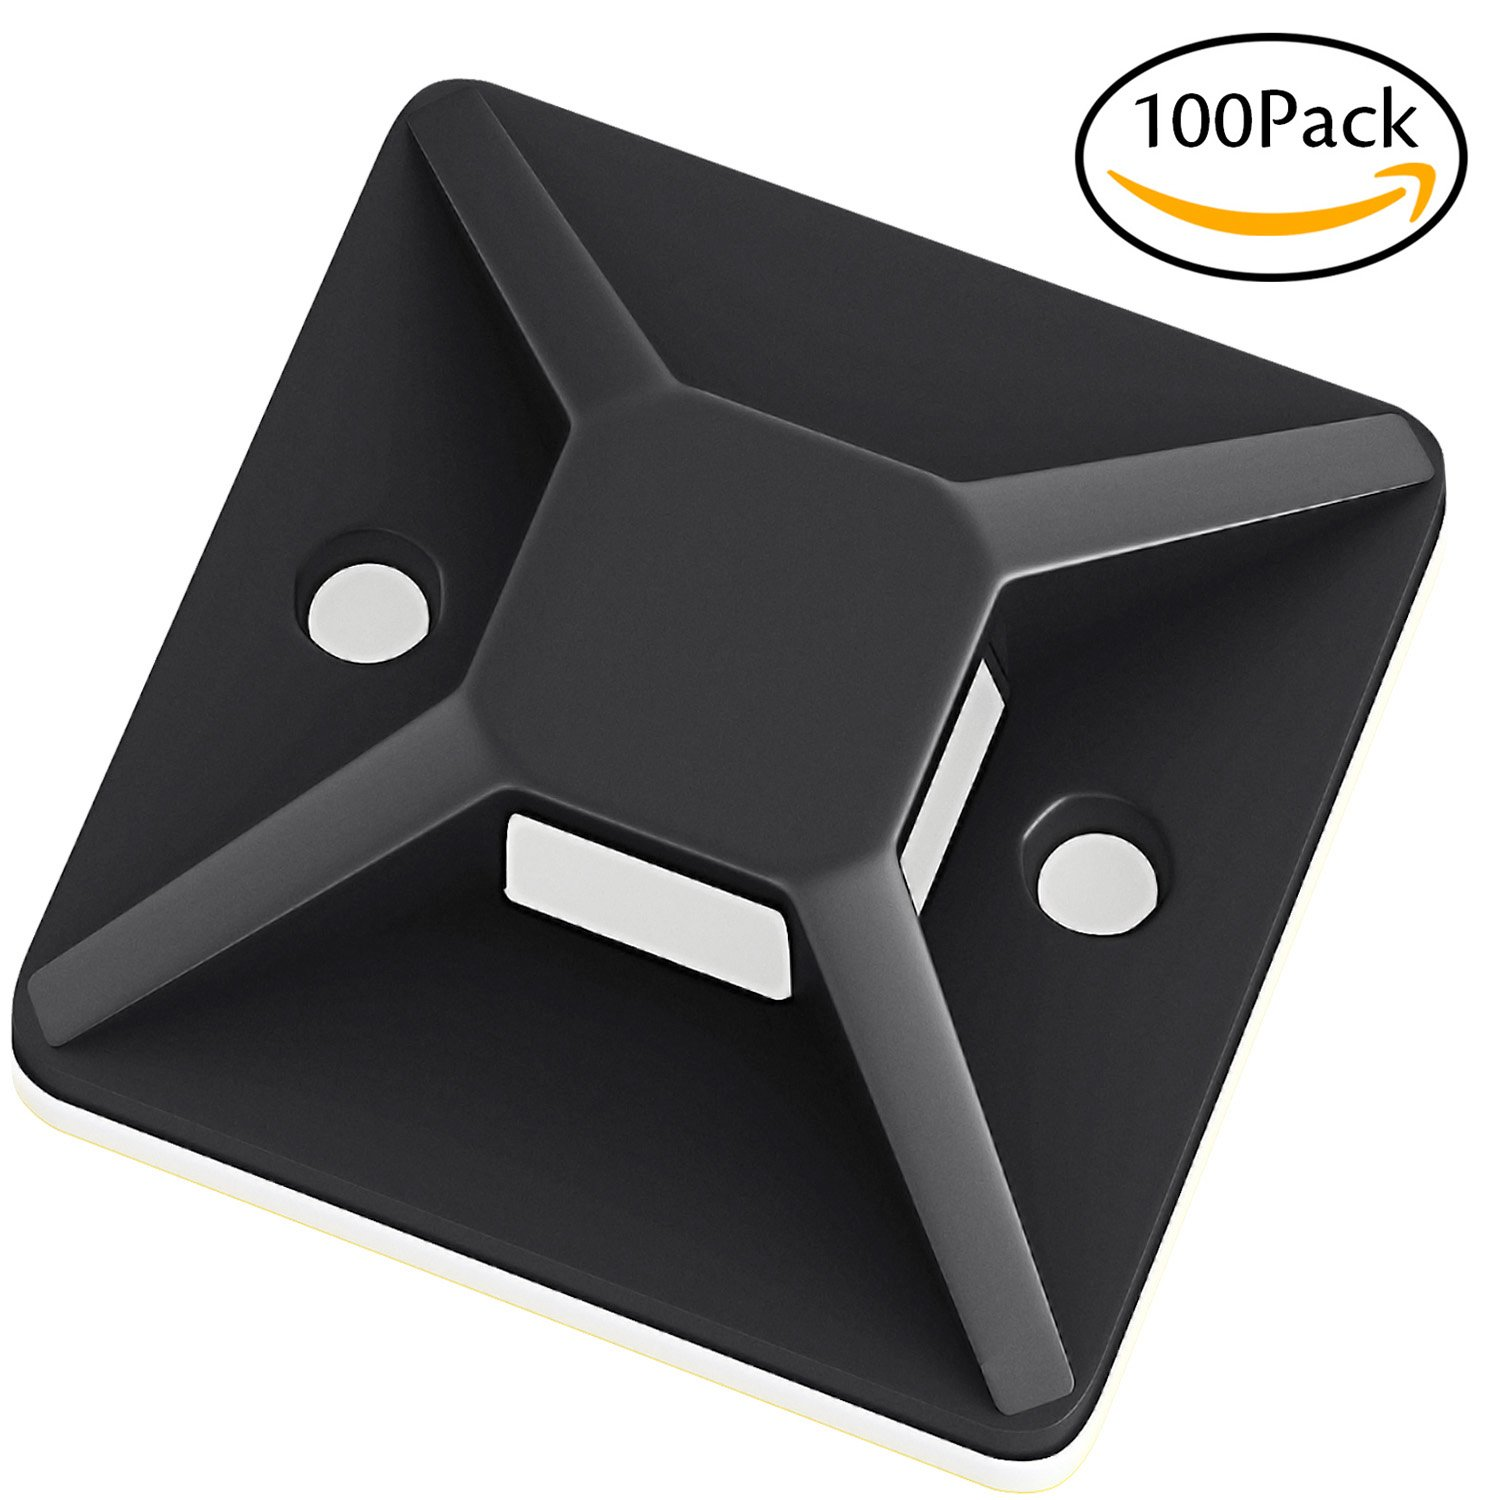 Darller 100 Pack Self Adhesive Cable Tie Mounts Wire Tie Base Holders (25mm x 25mm, Black) - Screw-Hole Anchor Point Provides Optimal Strength for Long